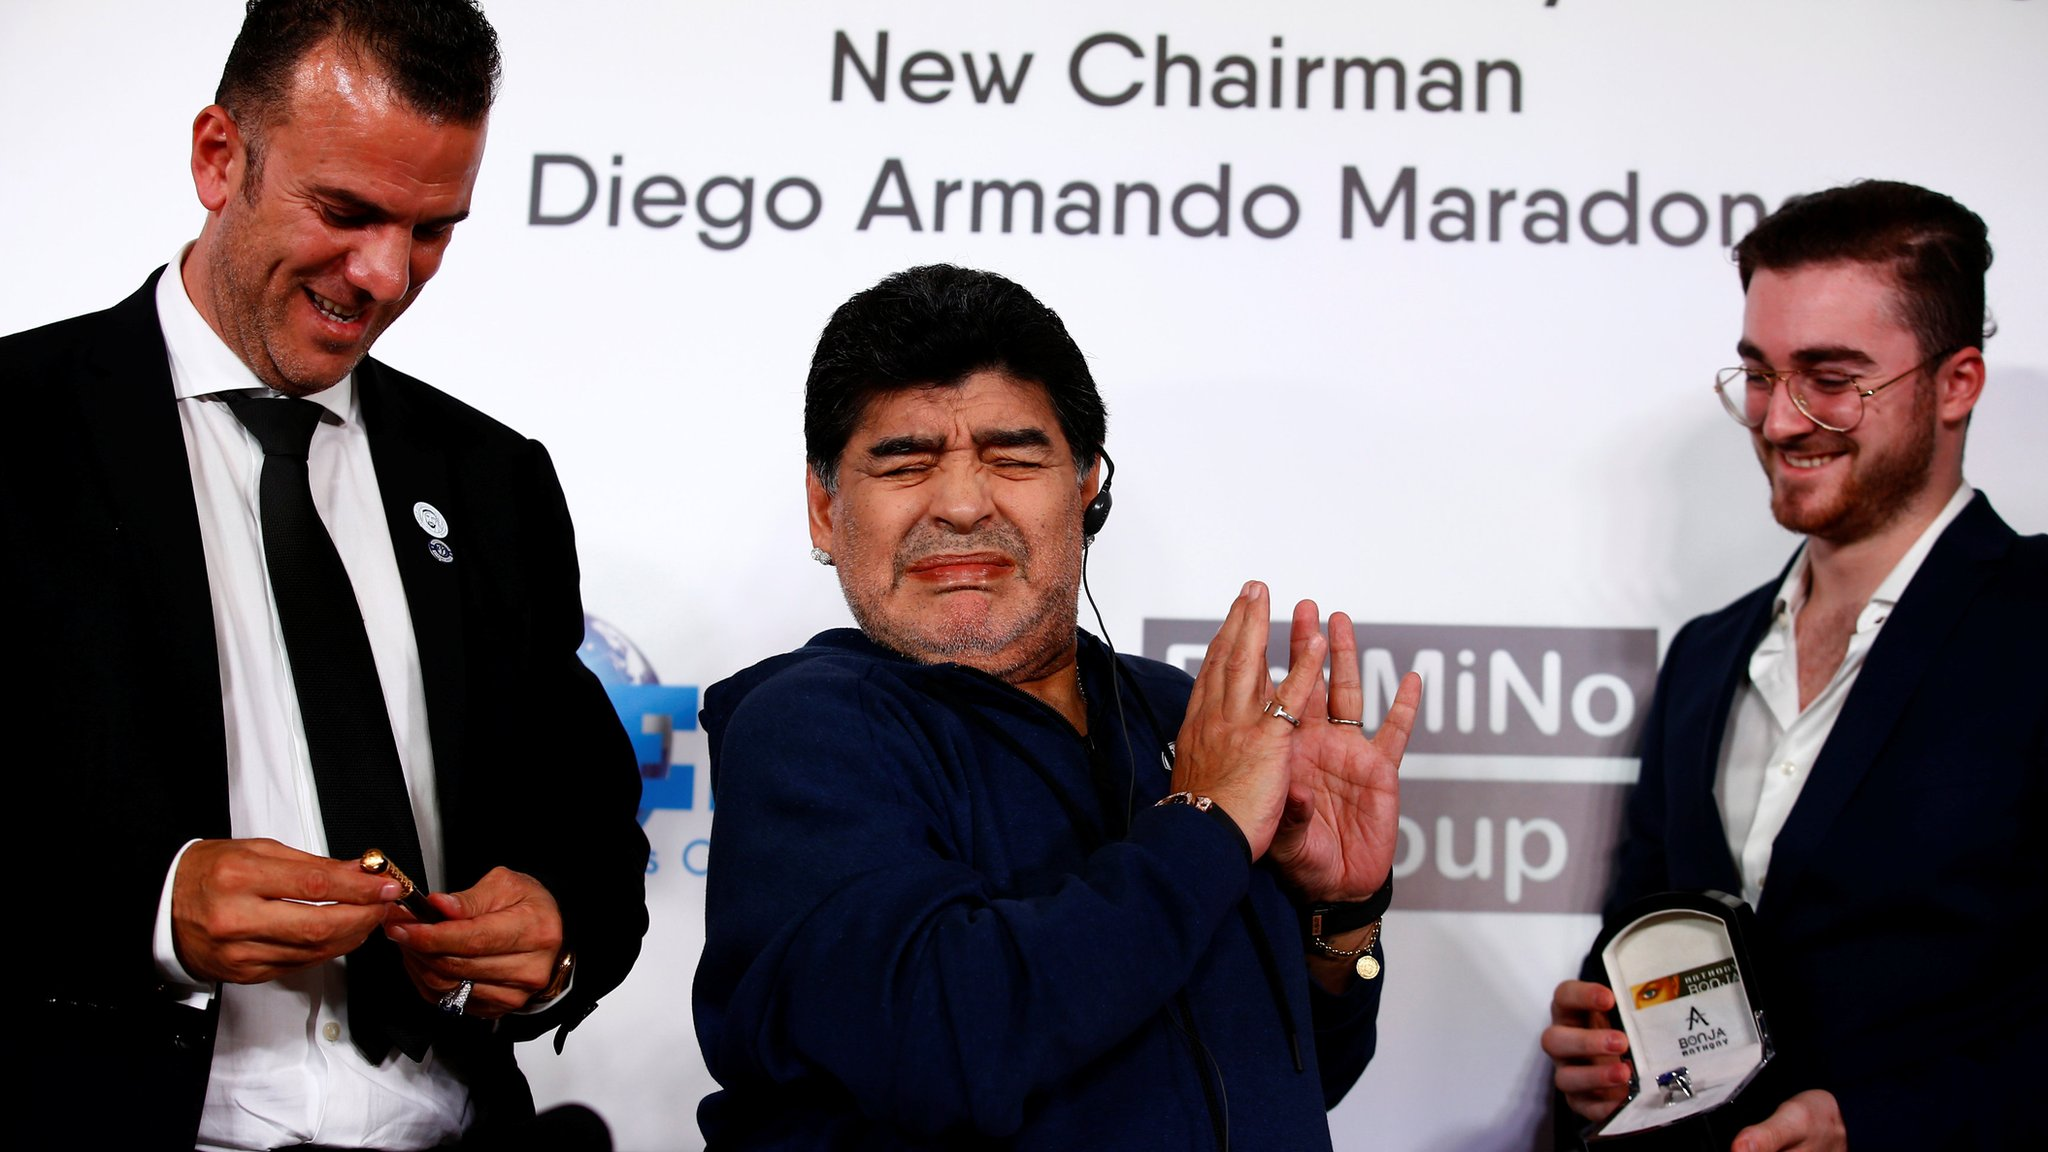 Diego Maradona presented as Dinamo Brest chairman